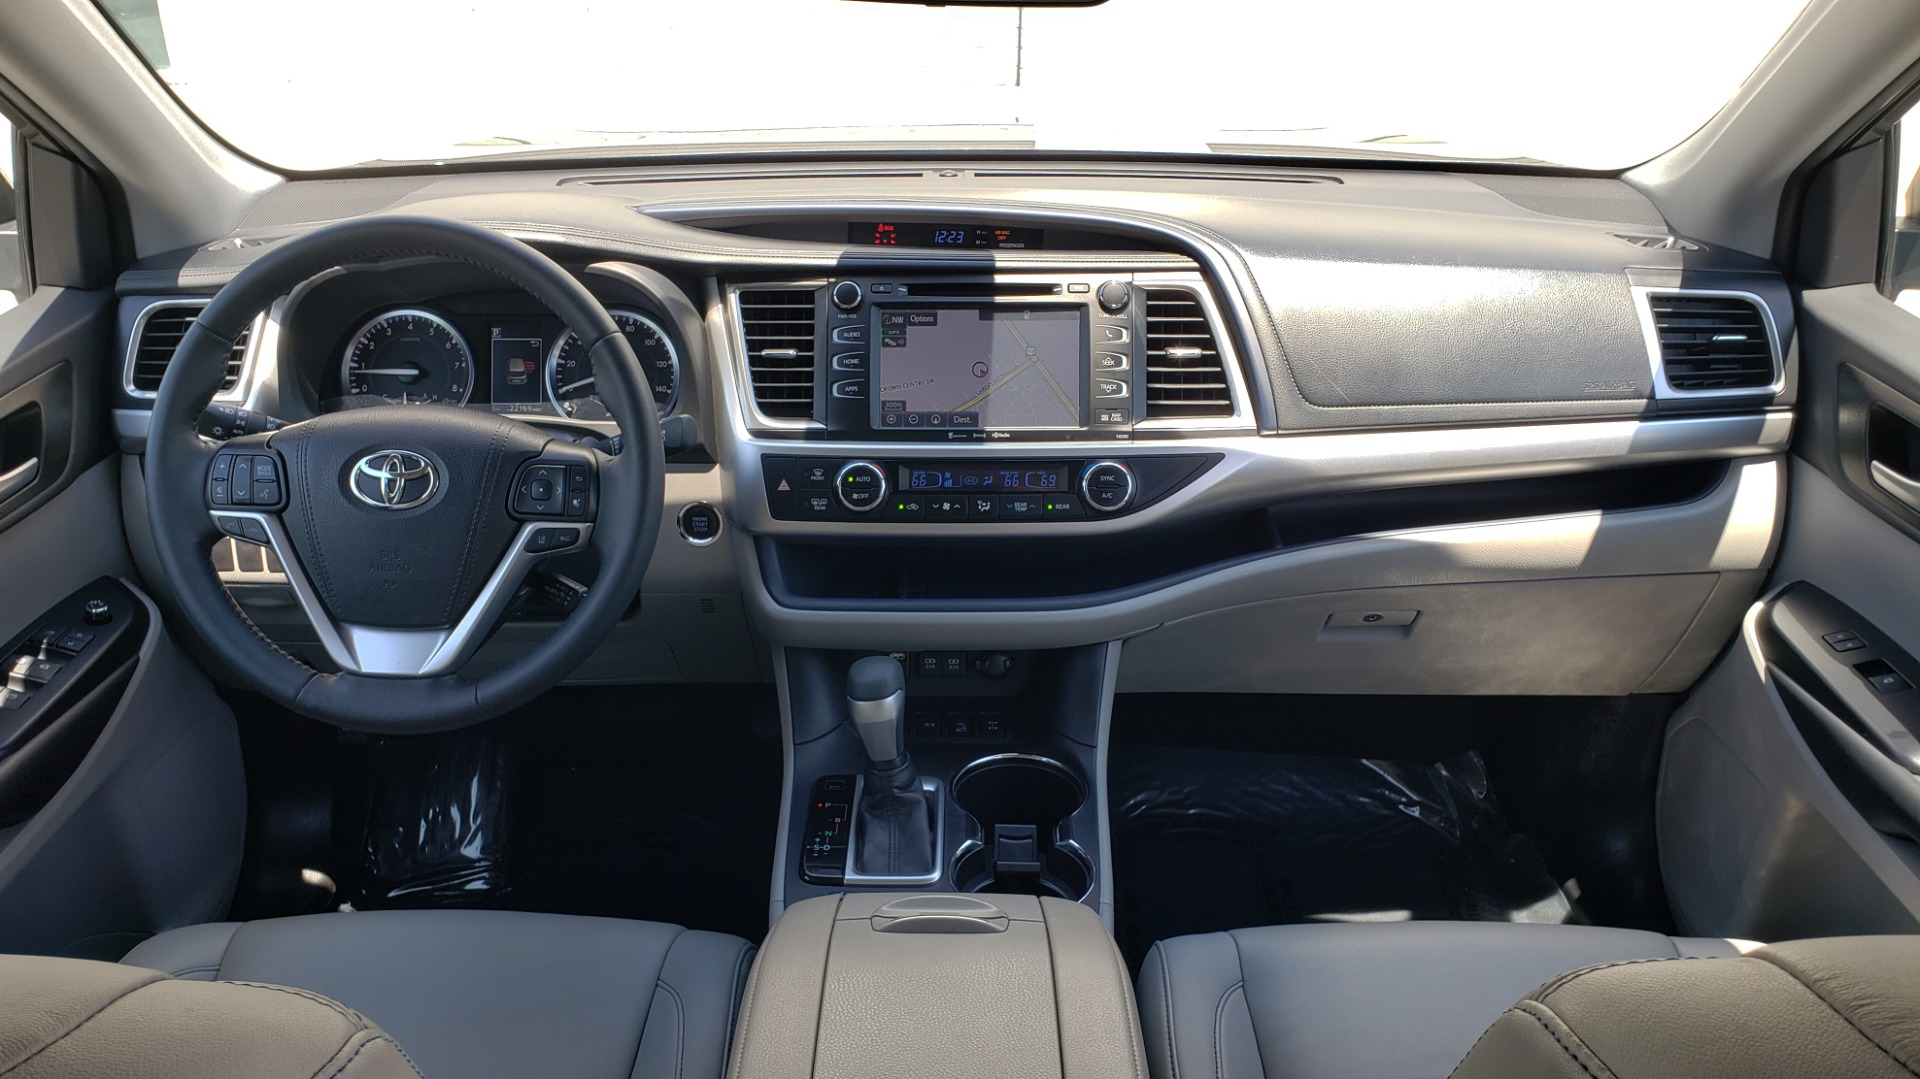 Used 2019 Toyota HIGHLANDER XLE / 3.5L V6 / AWD / LEATHER / 8-SPD AUTO / 1-OWNER for sale $37,500 at Formula Imports in Charlotte NC 28227 78